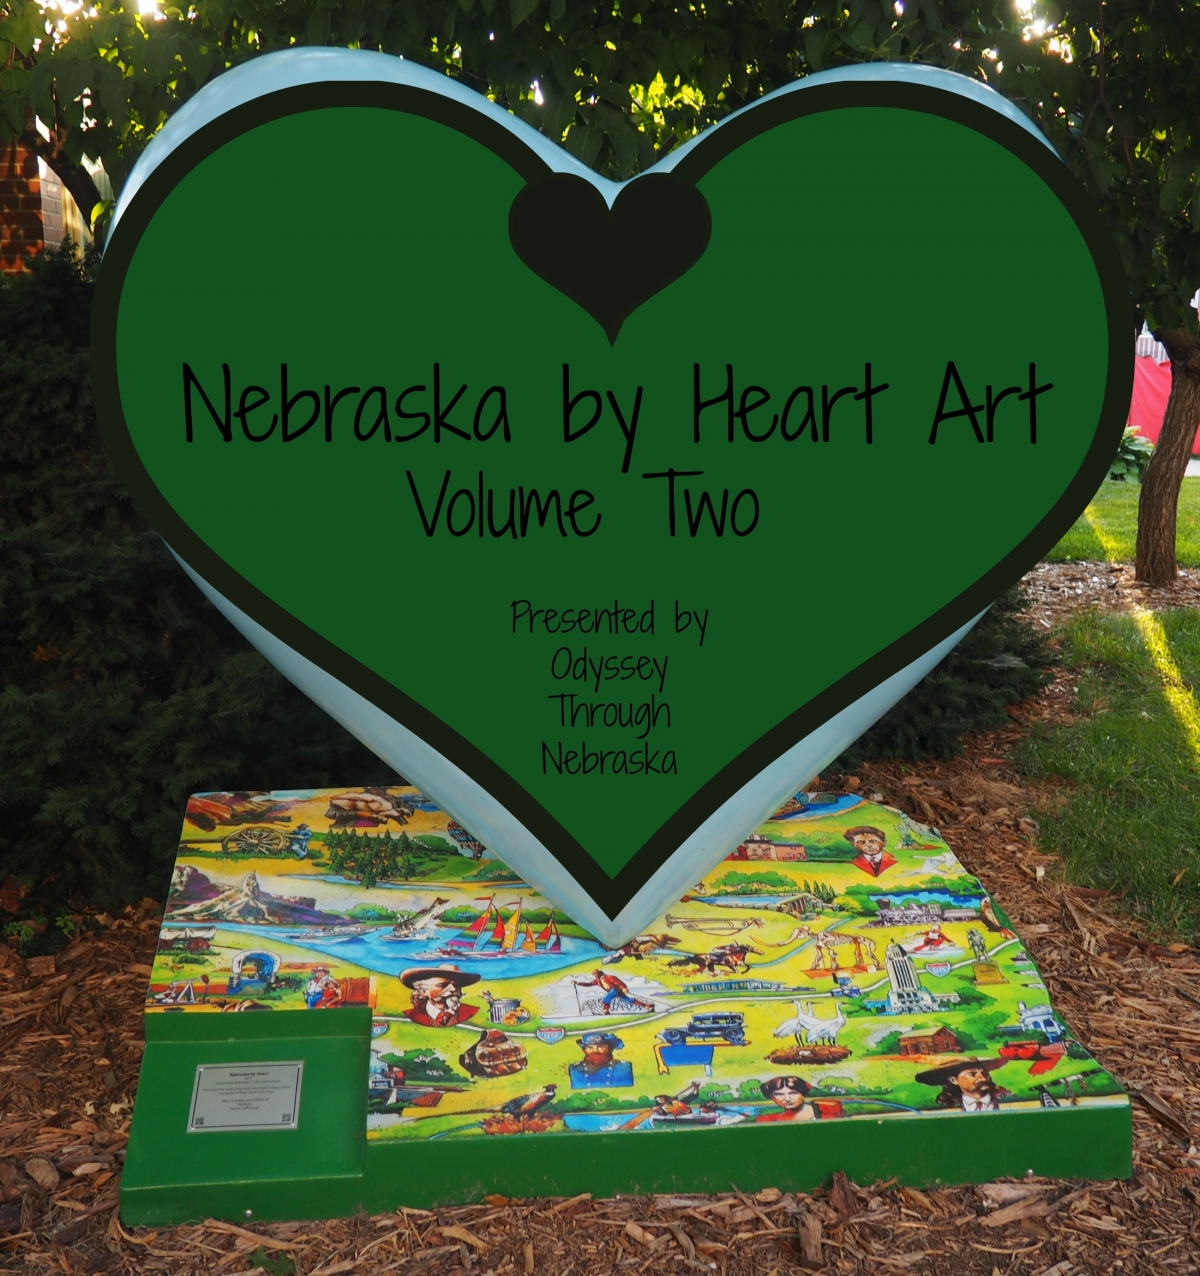 Nebraska by Heart Art Volume 2 in honor of the Nebraska sesquicentennial